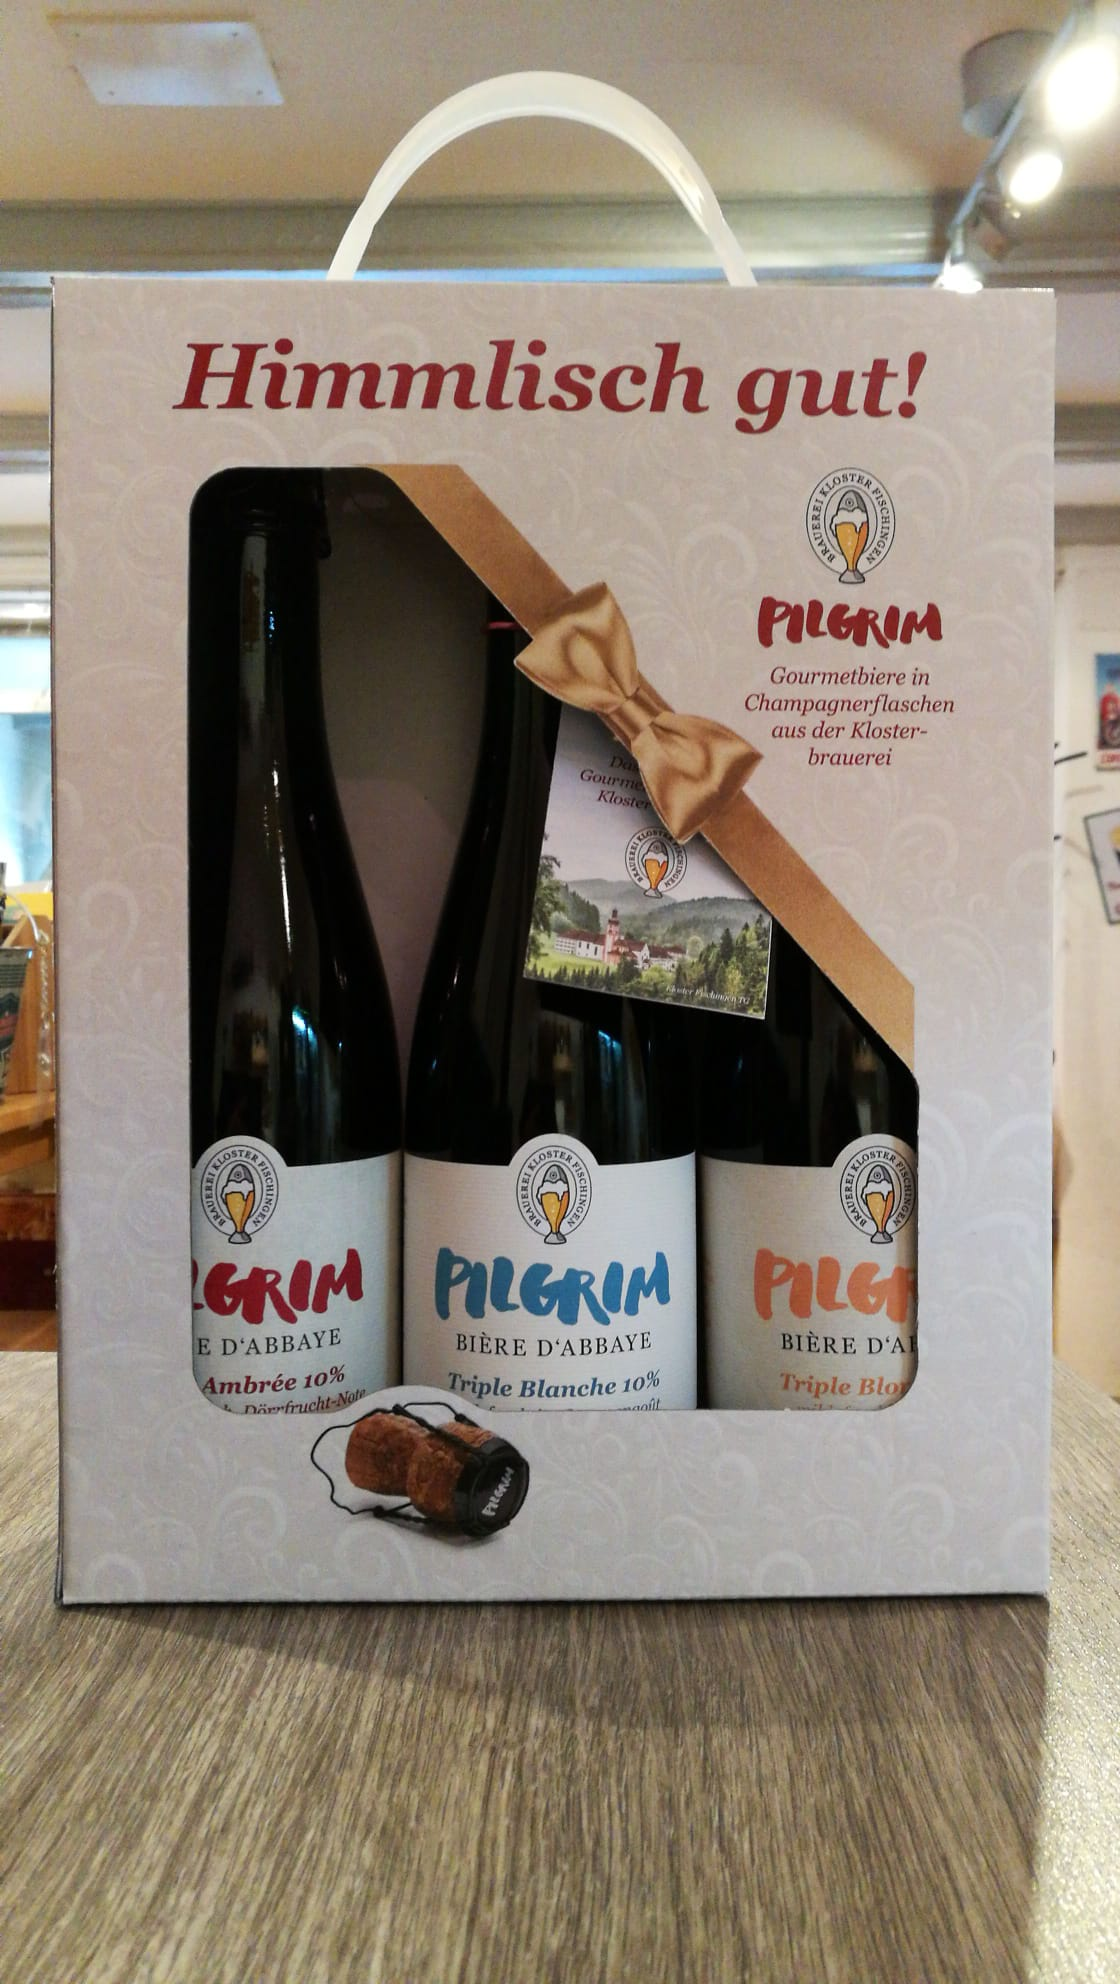 3-er Bier-Set Pilgrim 37.5cl